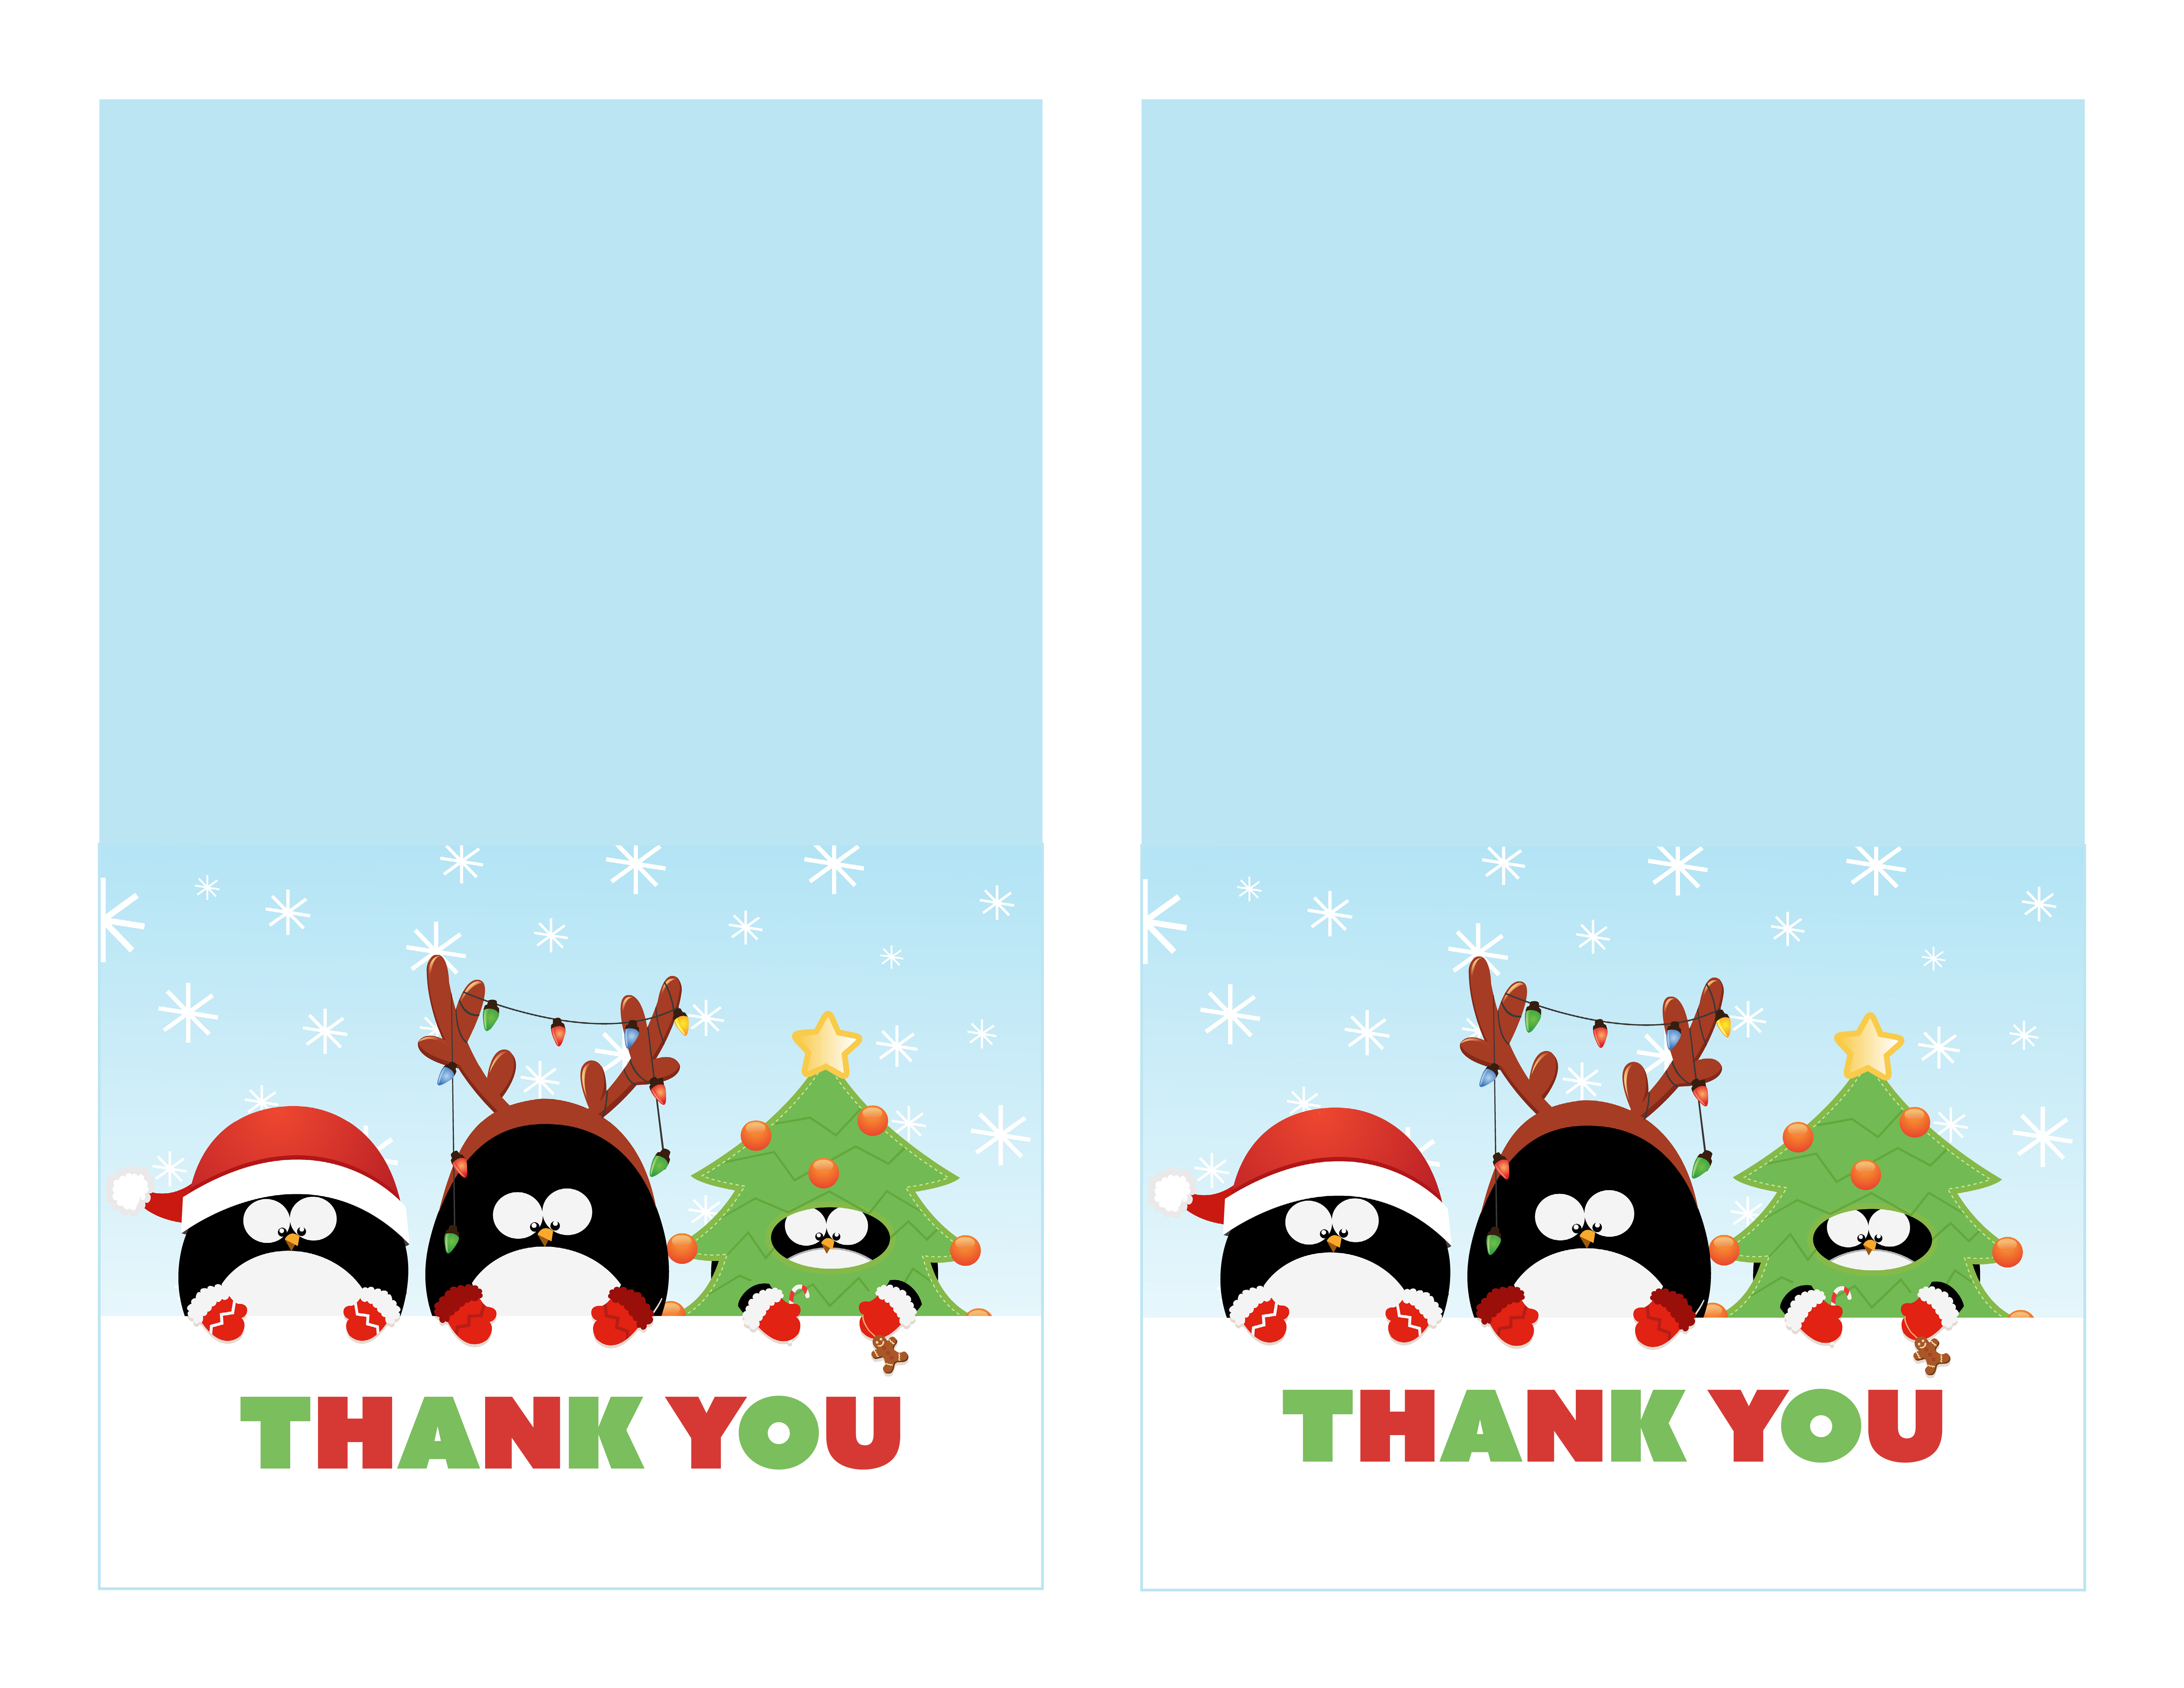 Free Printable Christmas Thank You Cards - Printable Cards - Free Printable Happy Holidays Greeting Cards